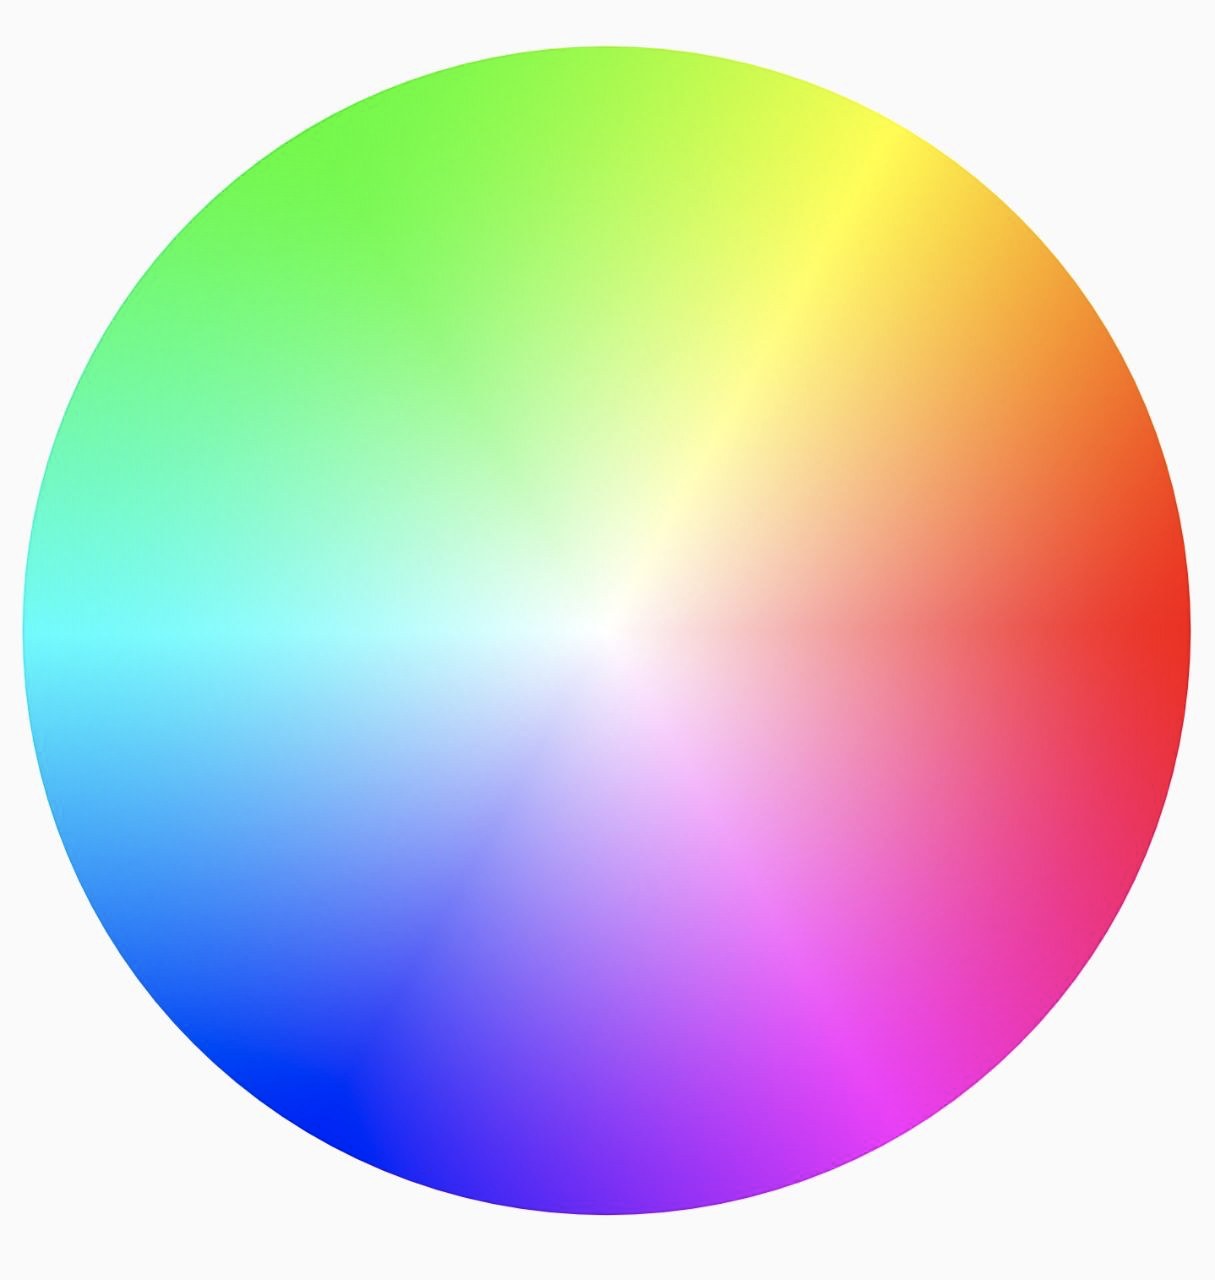 Color Wheel Efficient Drawing With Shaders Yaroslav Shevchuk